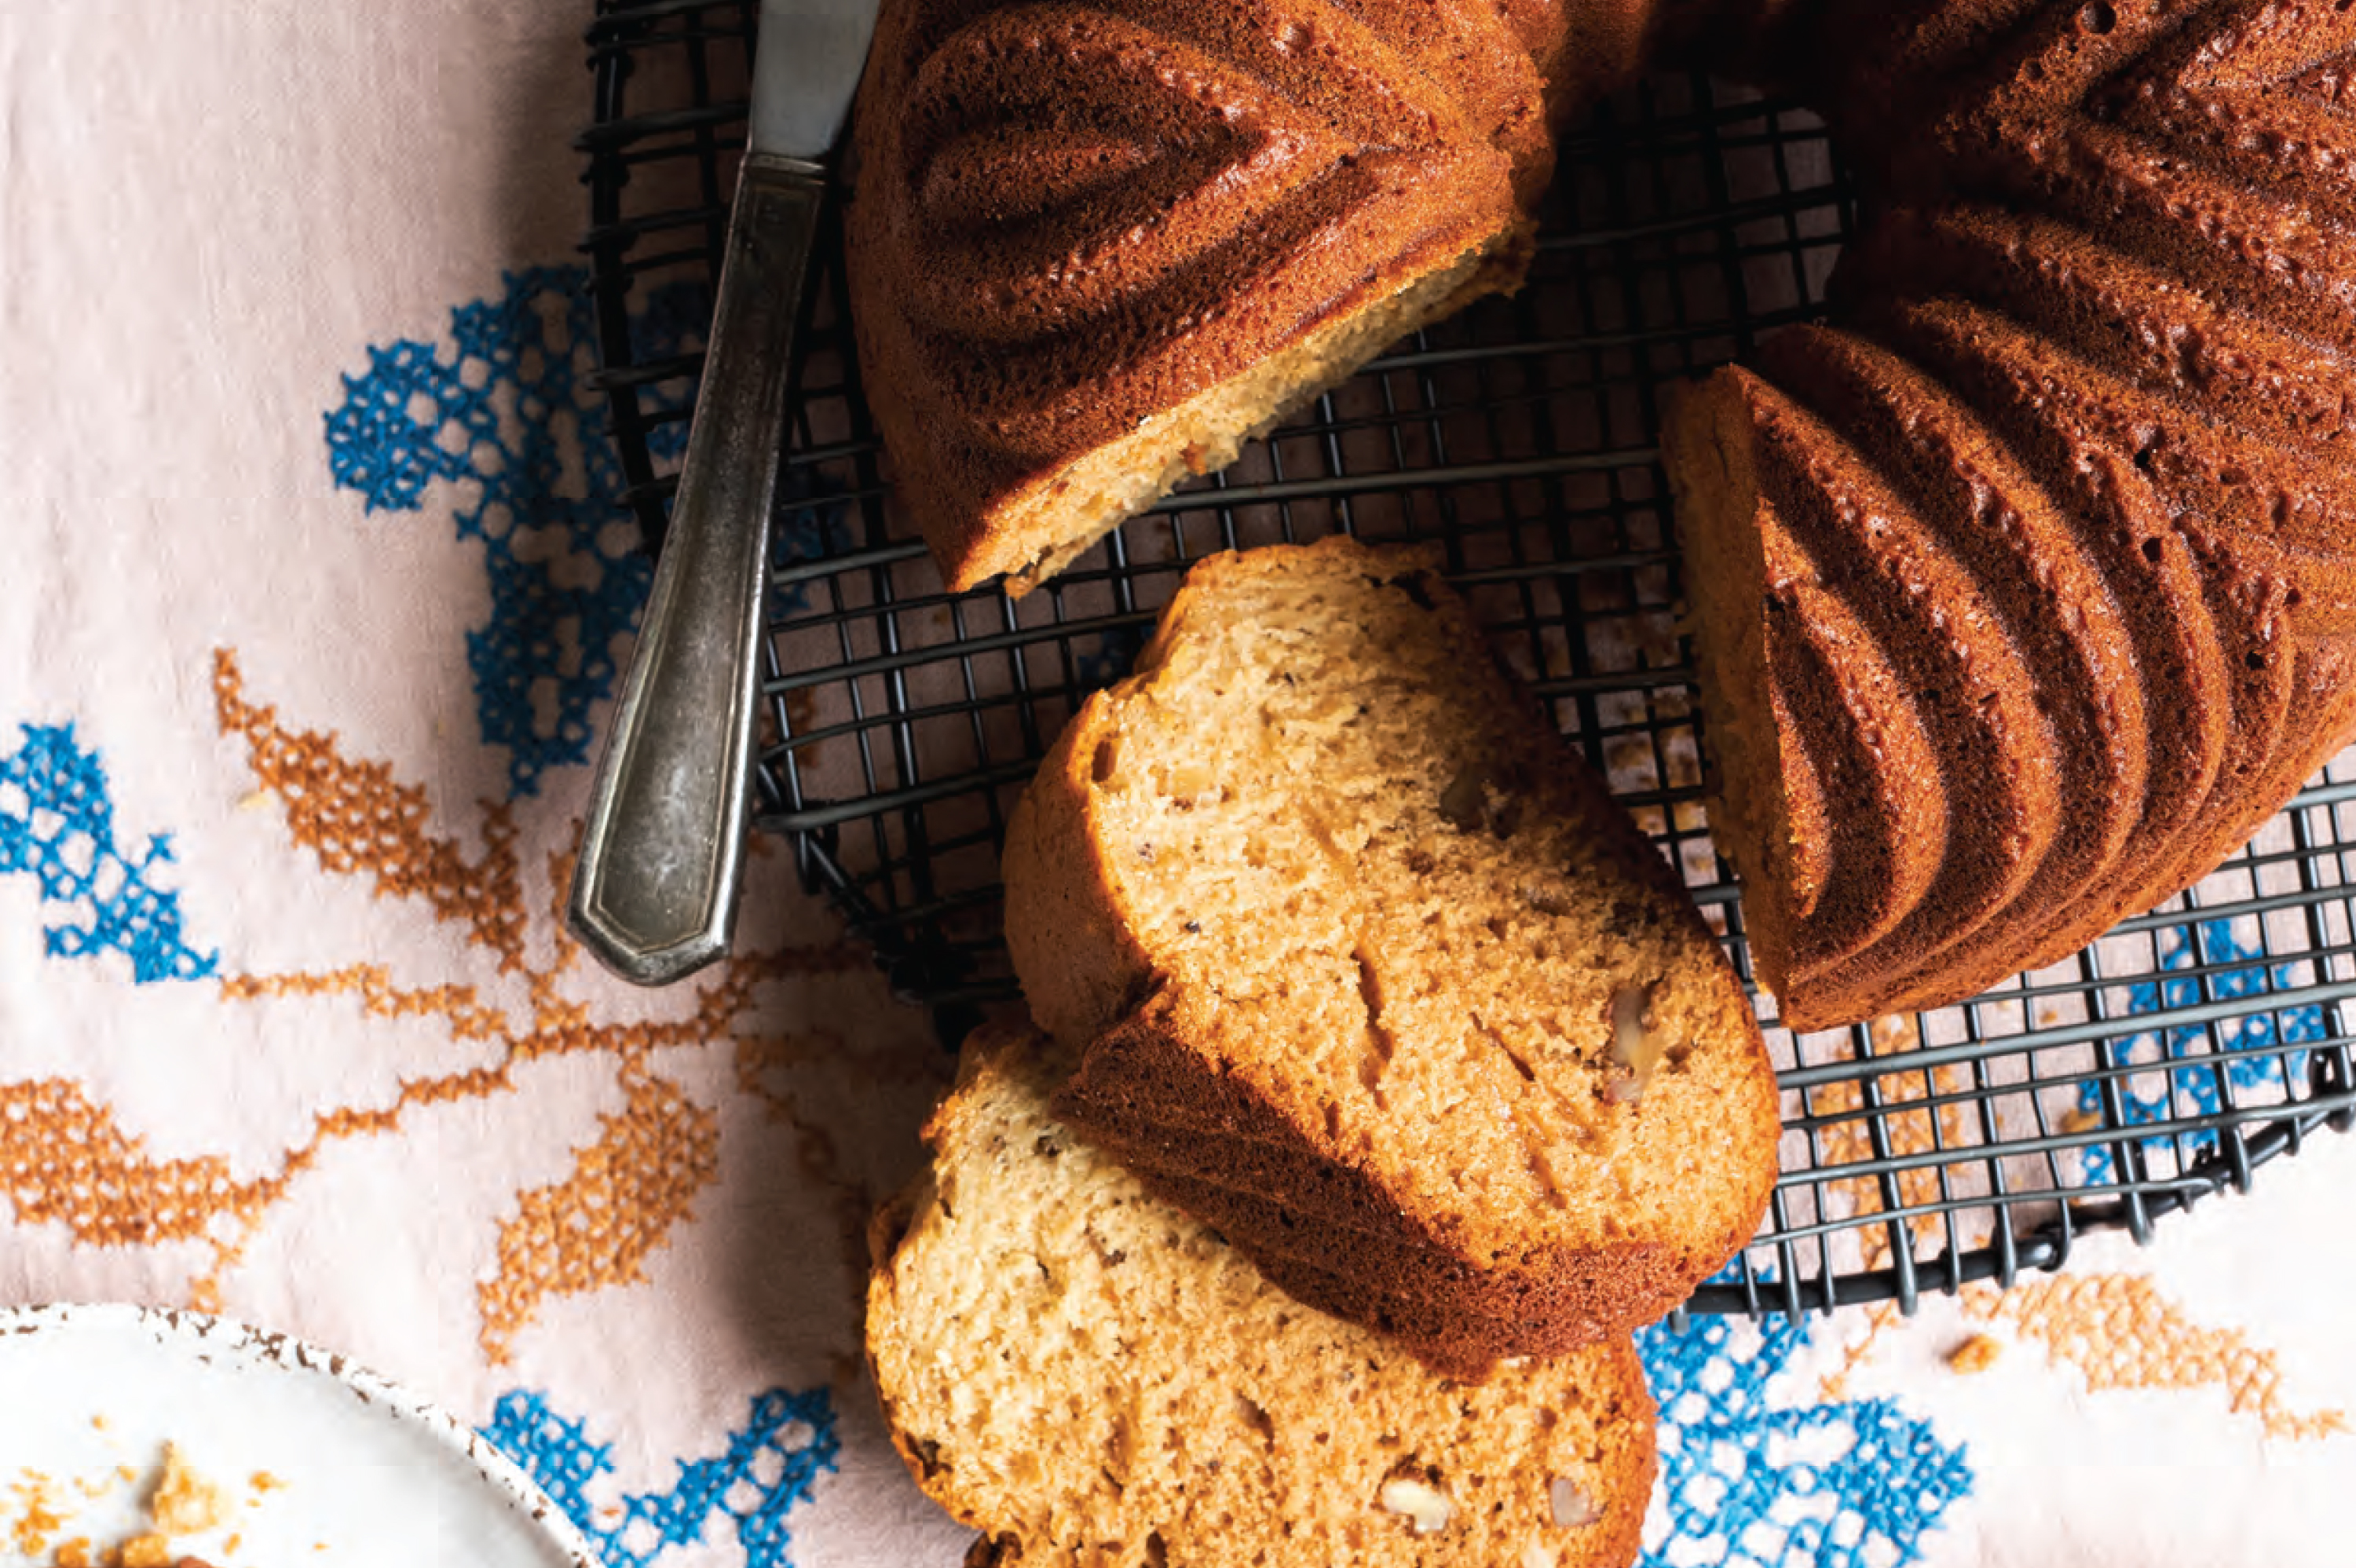 LMLD POP UP BAKE SHOP- HONEY CAKES AVAILABLE FOR PRE-ORDER FOR ROSH HASHANAH